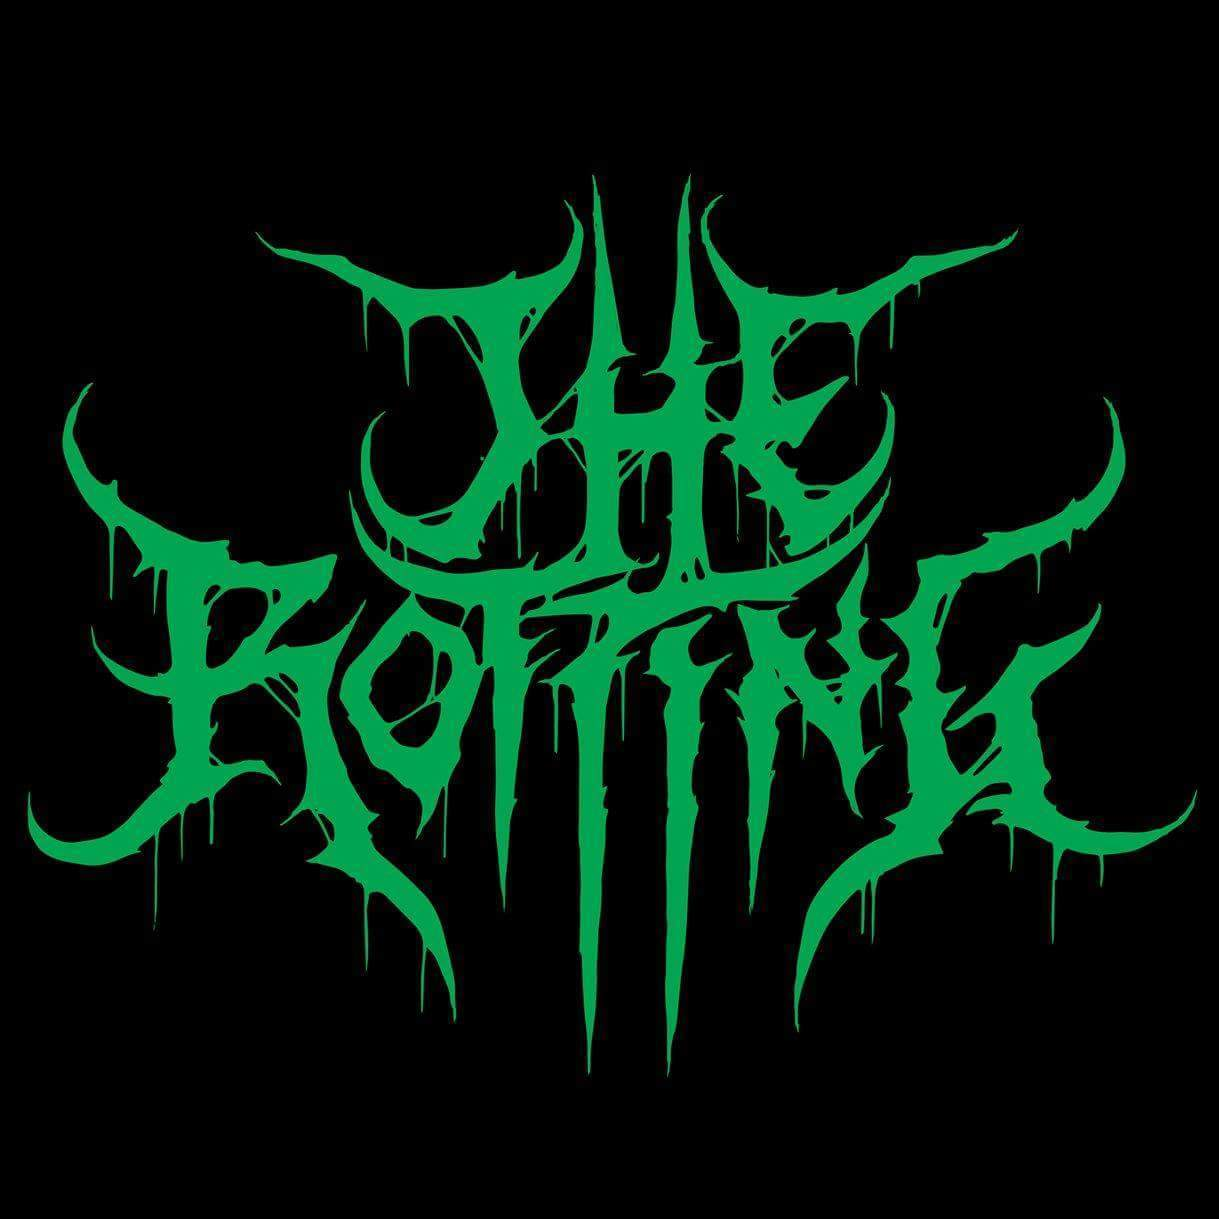 THE ROTTING